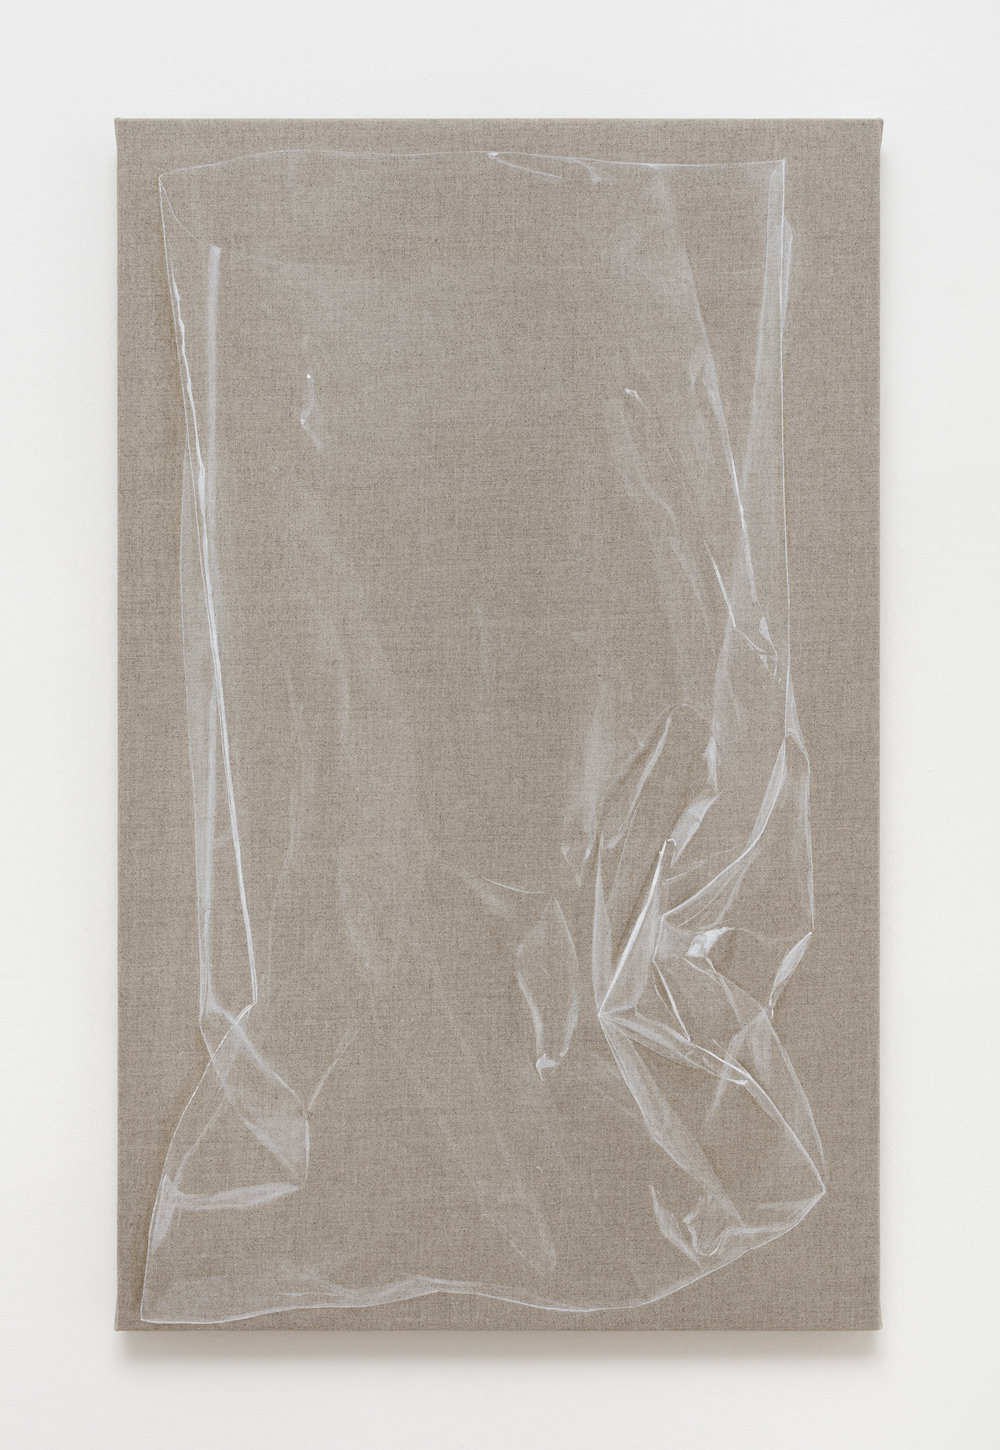 The Armory Art Fair - Helene Appel at P420 Gallery